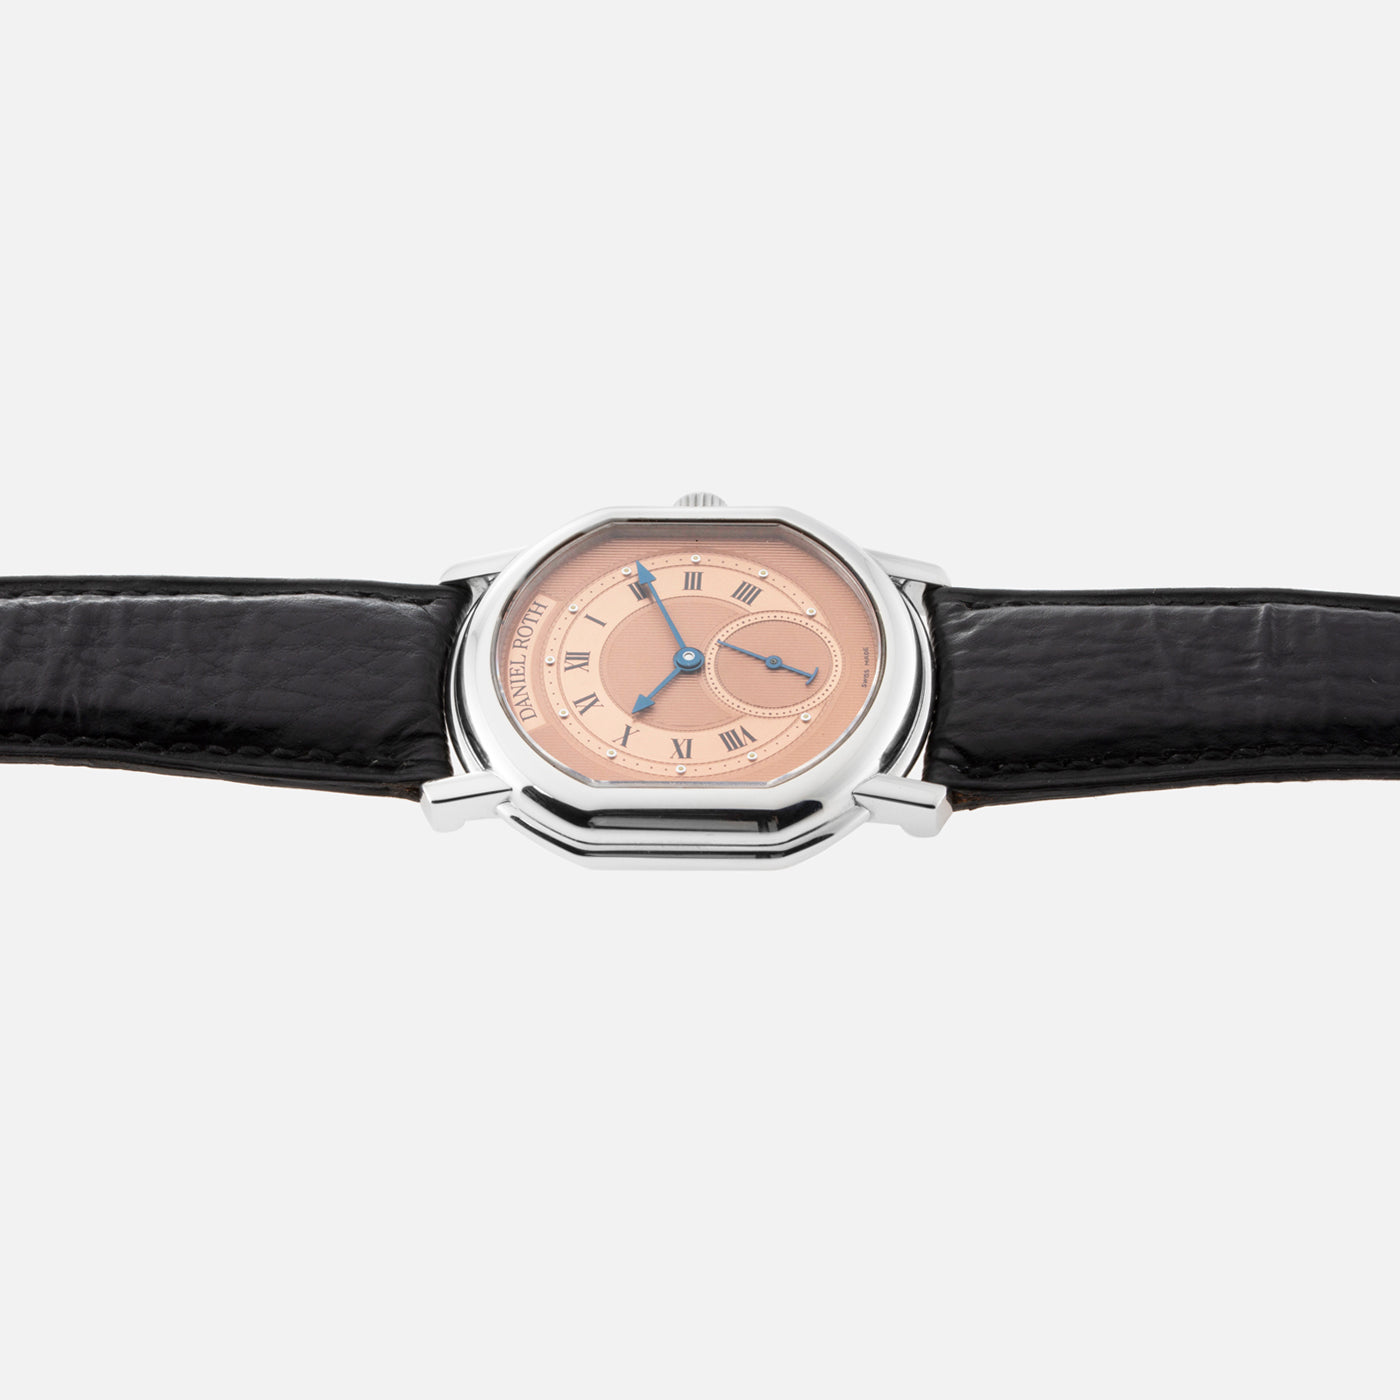 Daniel Roth Small Seconds Salmon Dial